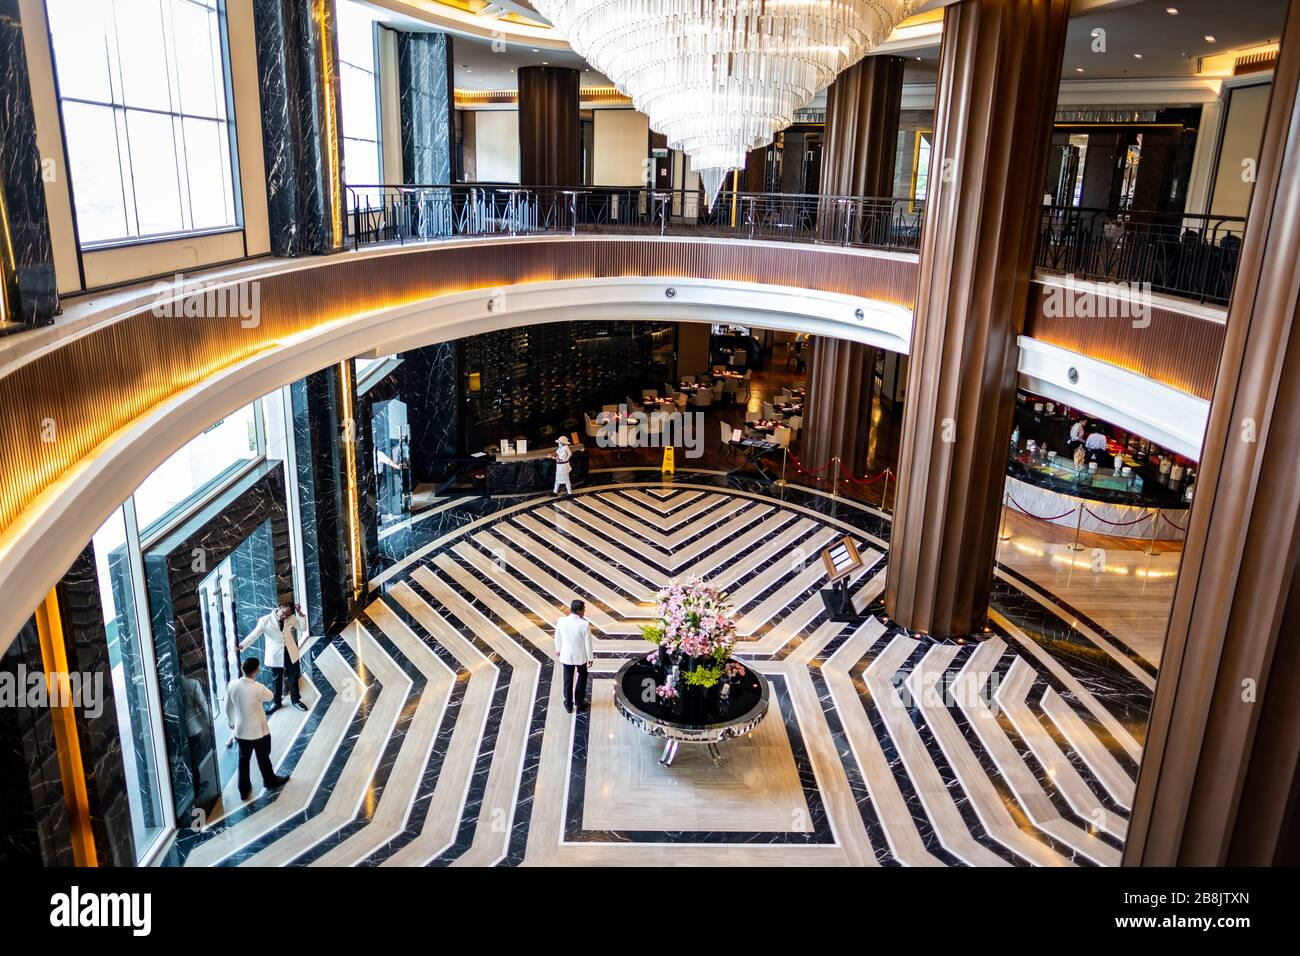 Kuala Lumpur Malaysia Interior Of The The Majestic Hotel Kuala Lumpur A Famous Colonial Building Hotel And A National Heritage Site Stock Photo 349539309 Alamy